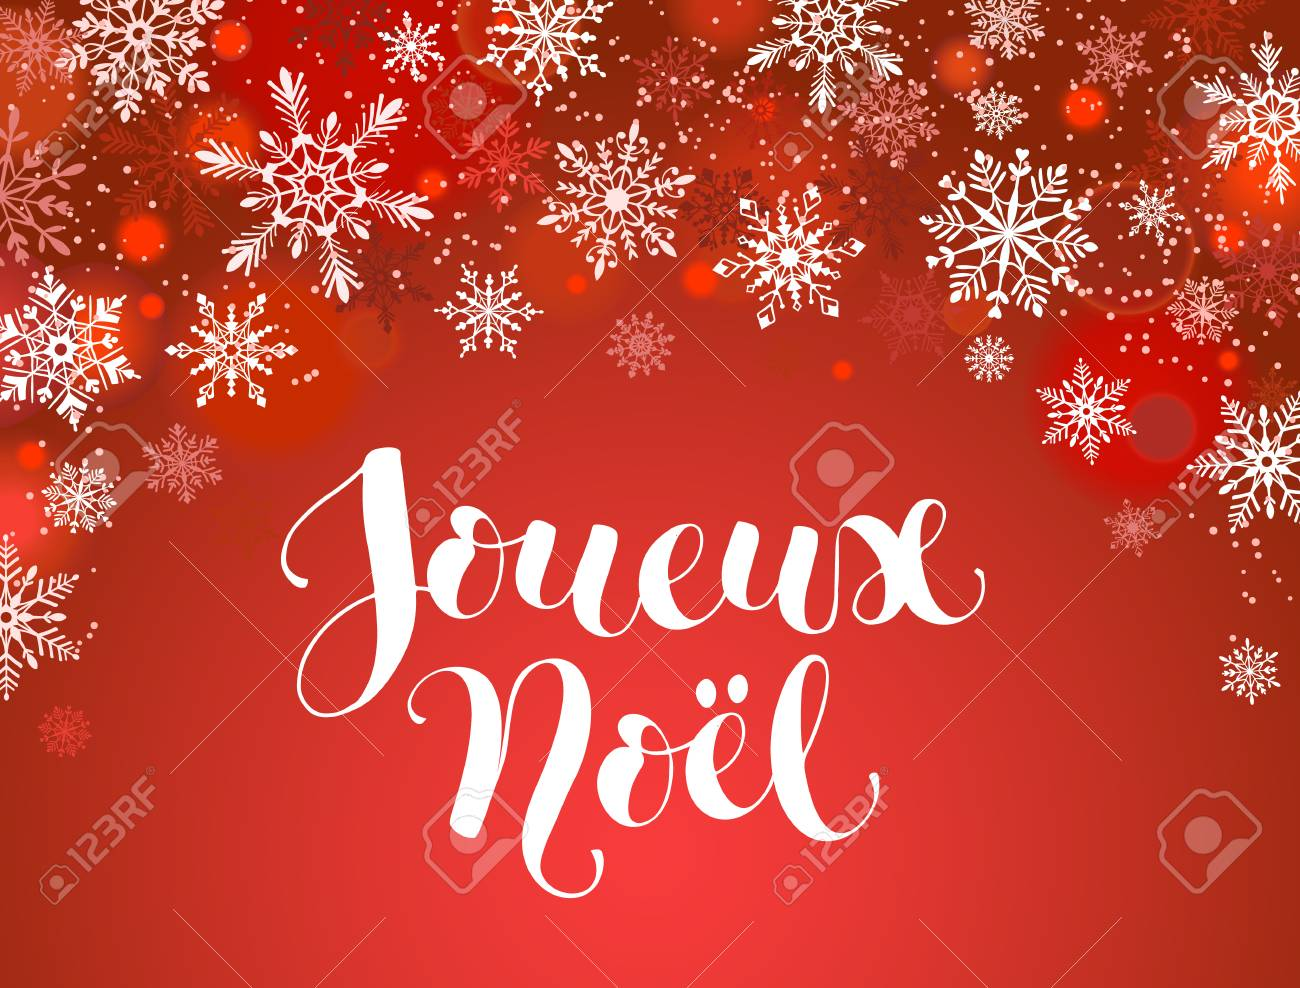 Merry christmas french greeting card template modern winter merry christmas french greeting card template modern winter holidays lettering with snowflakes on red background m4hsunfo